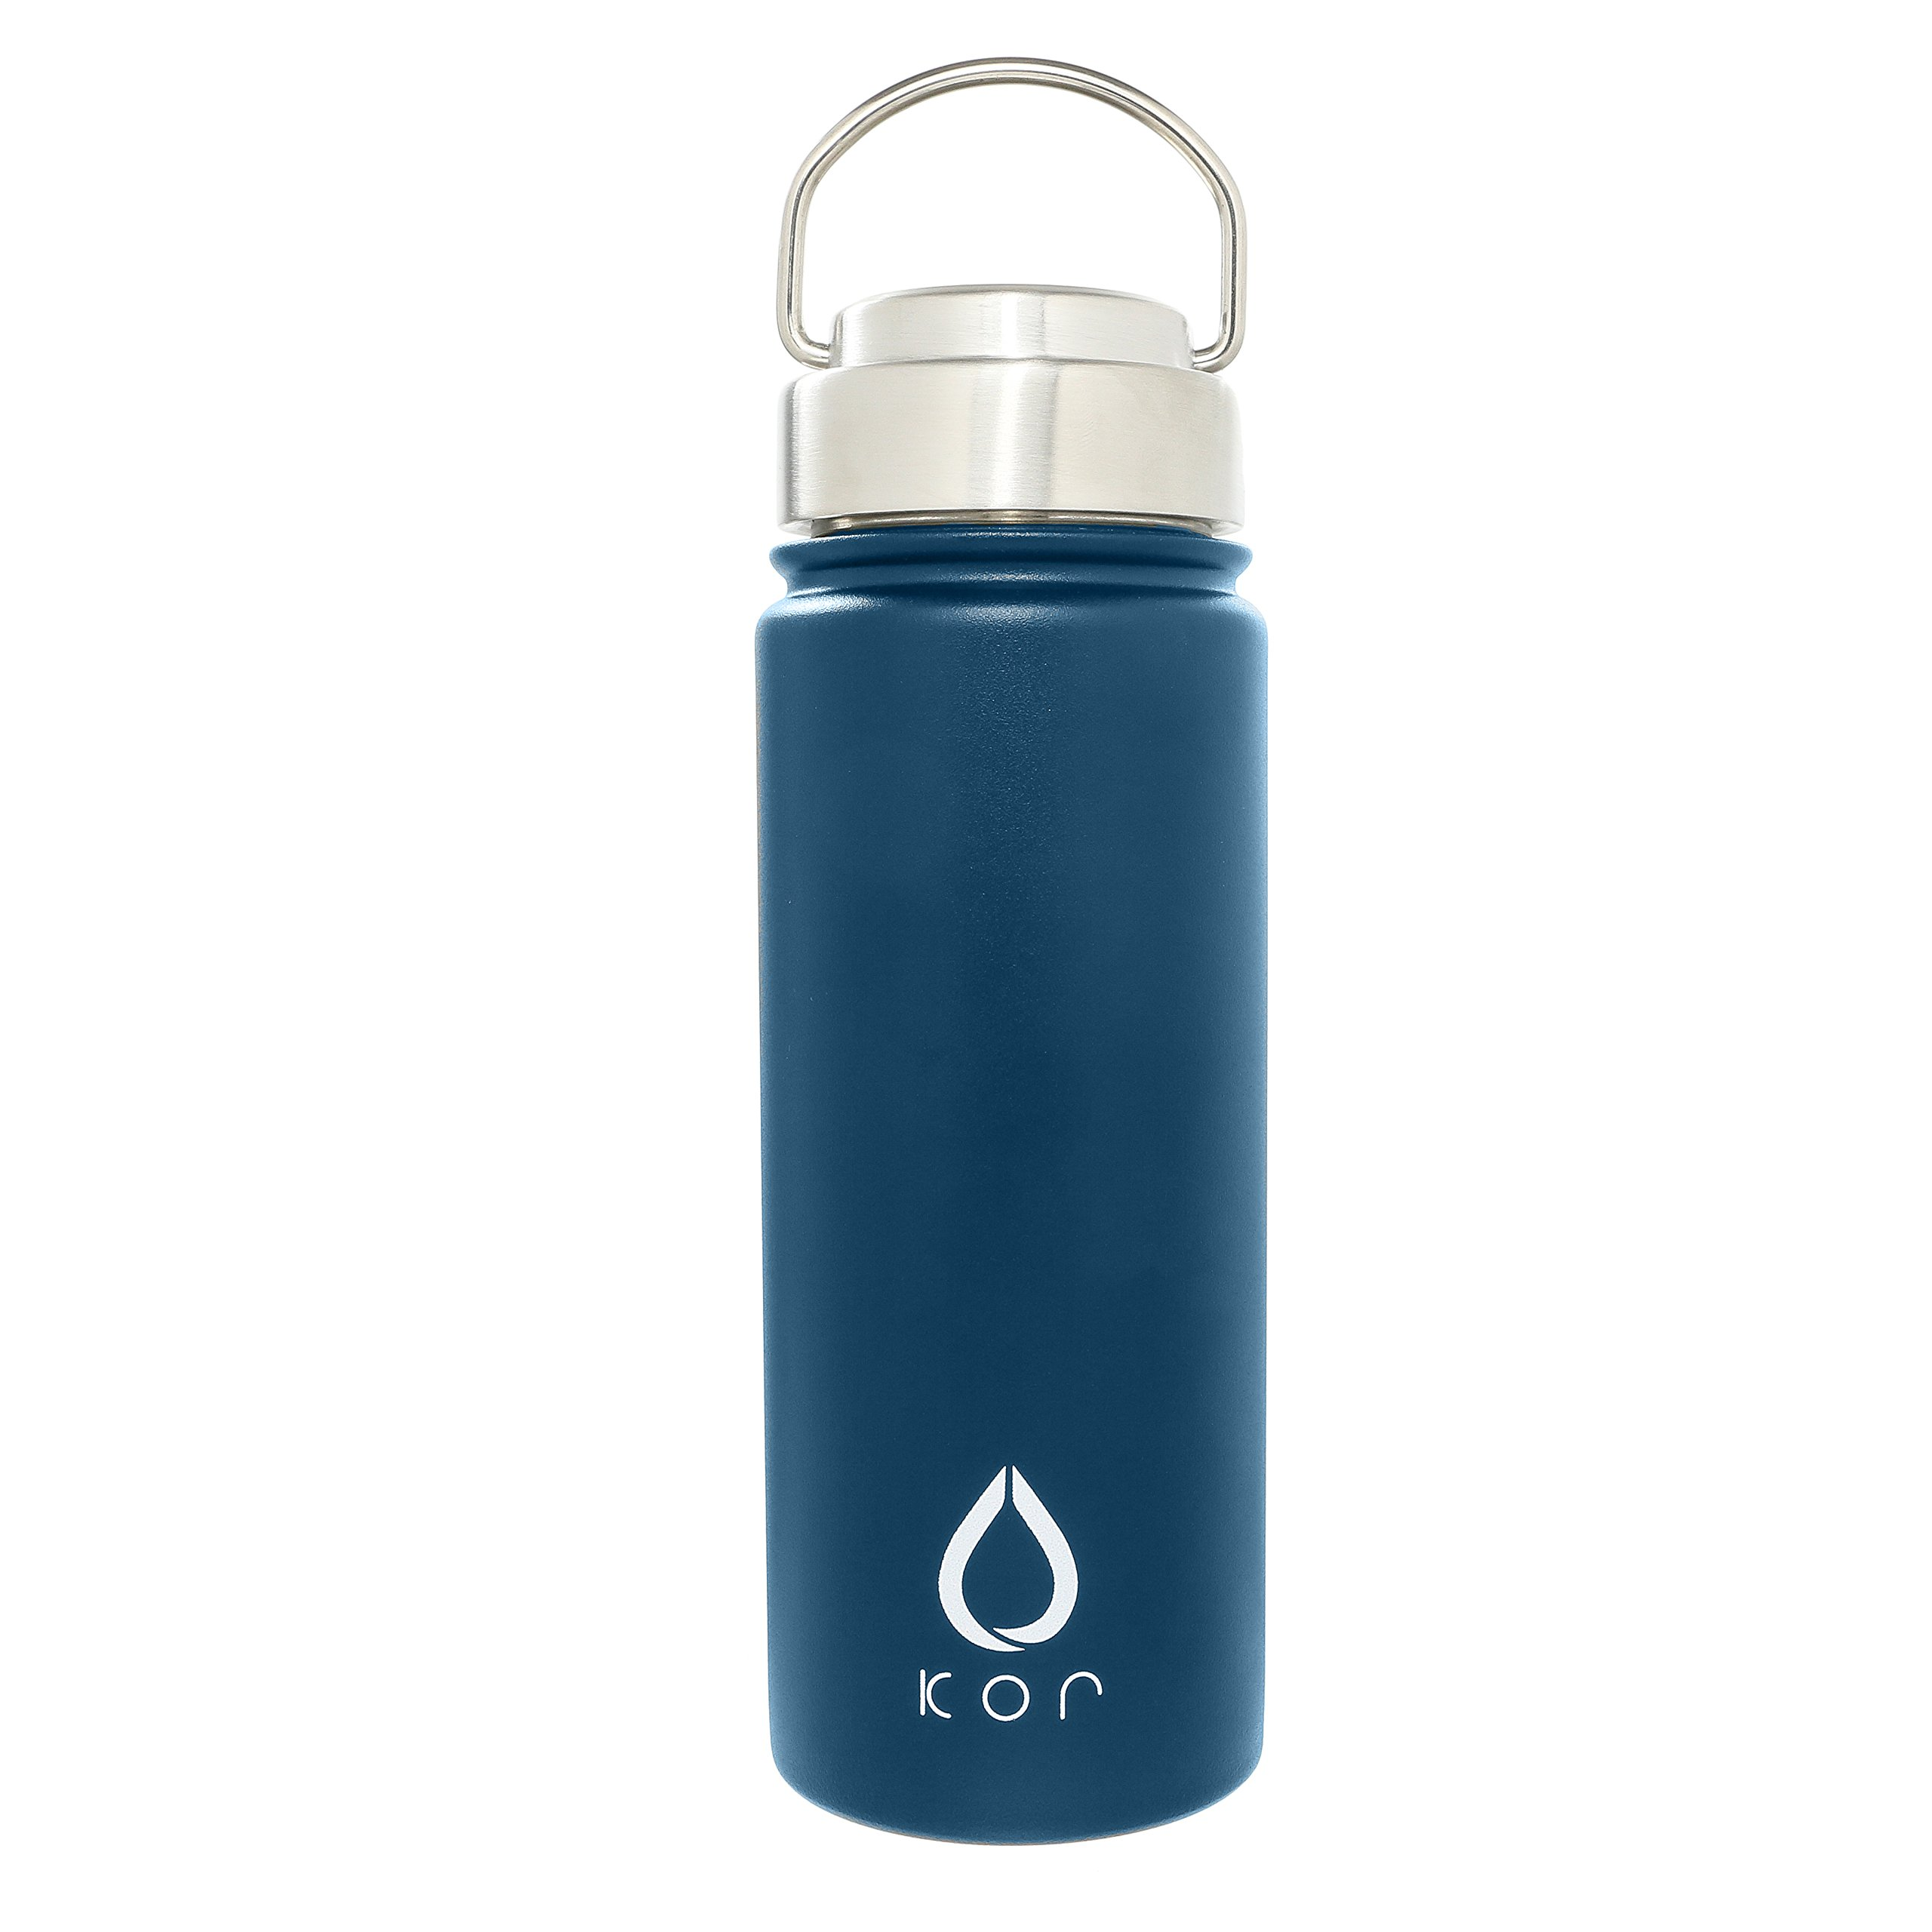 KOR ROK Double-Wall, Stainless Steel Water Bottle - Vacuum Insulated, Plastic-